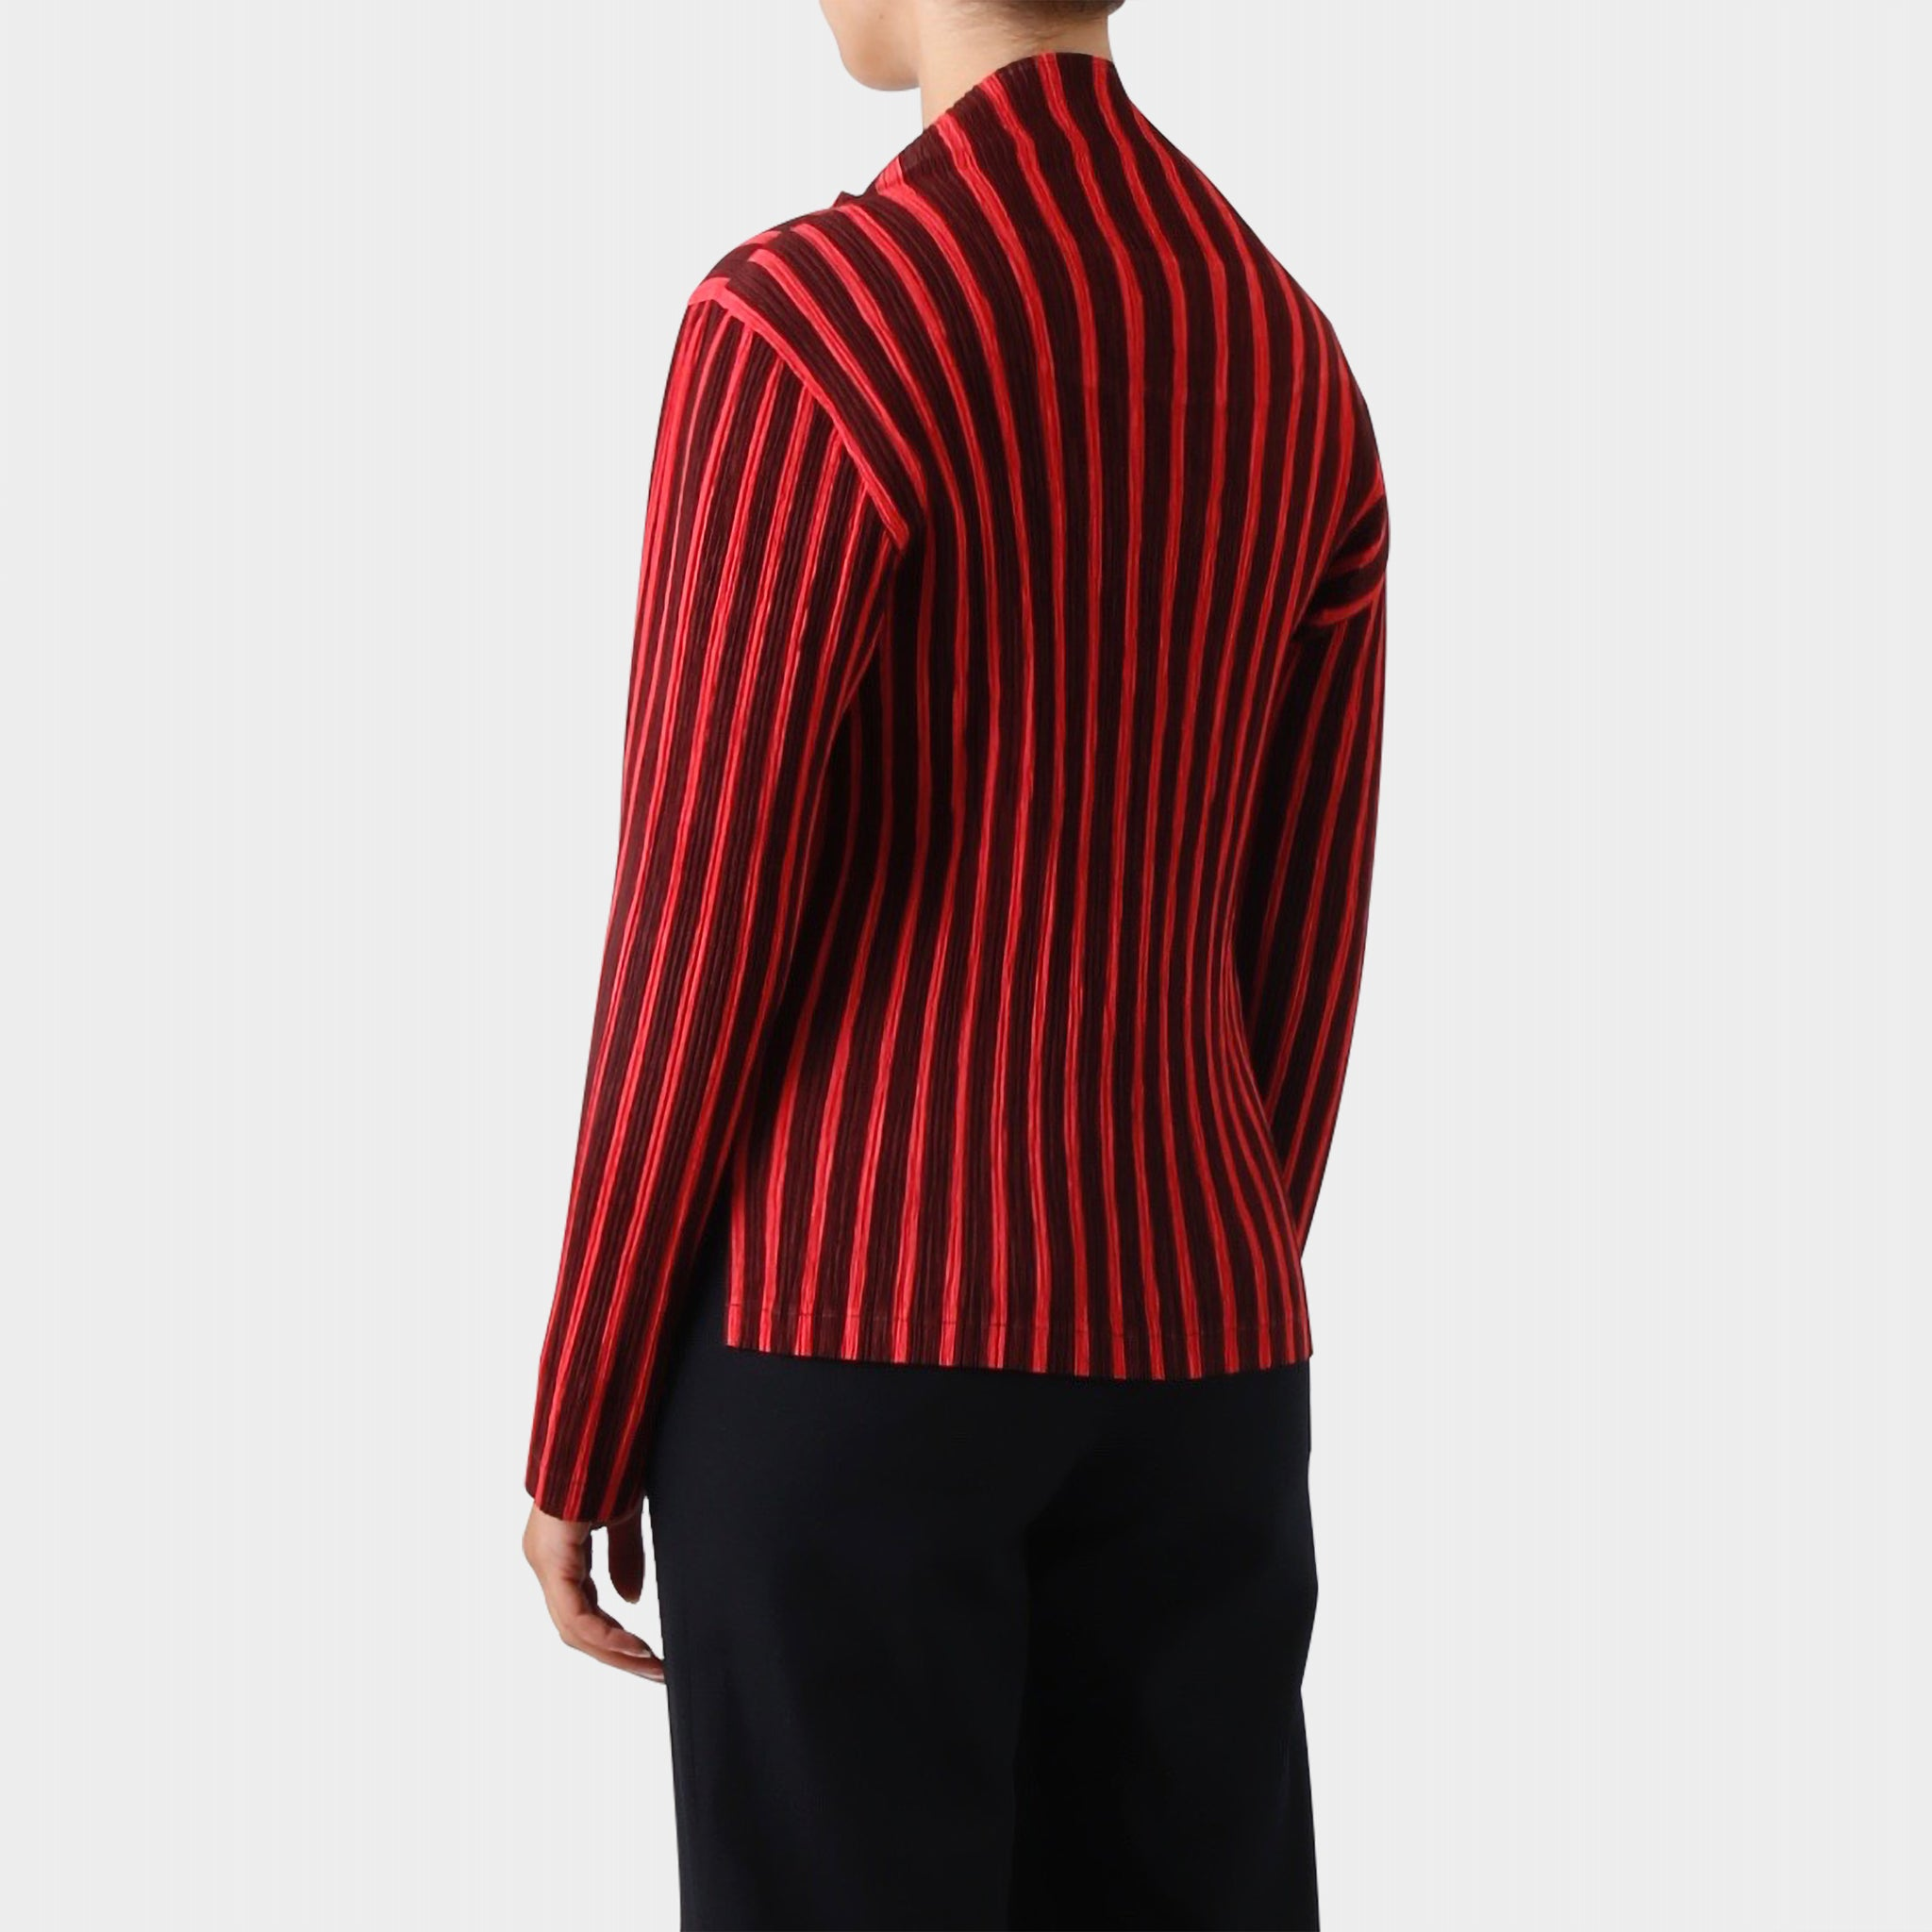 Issey Miyake Pleated Top